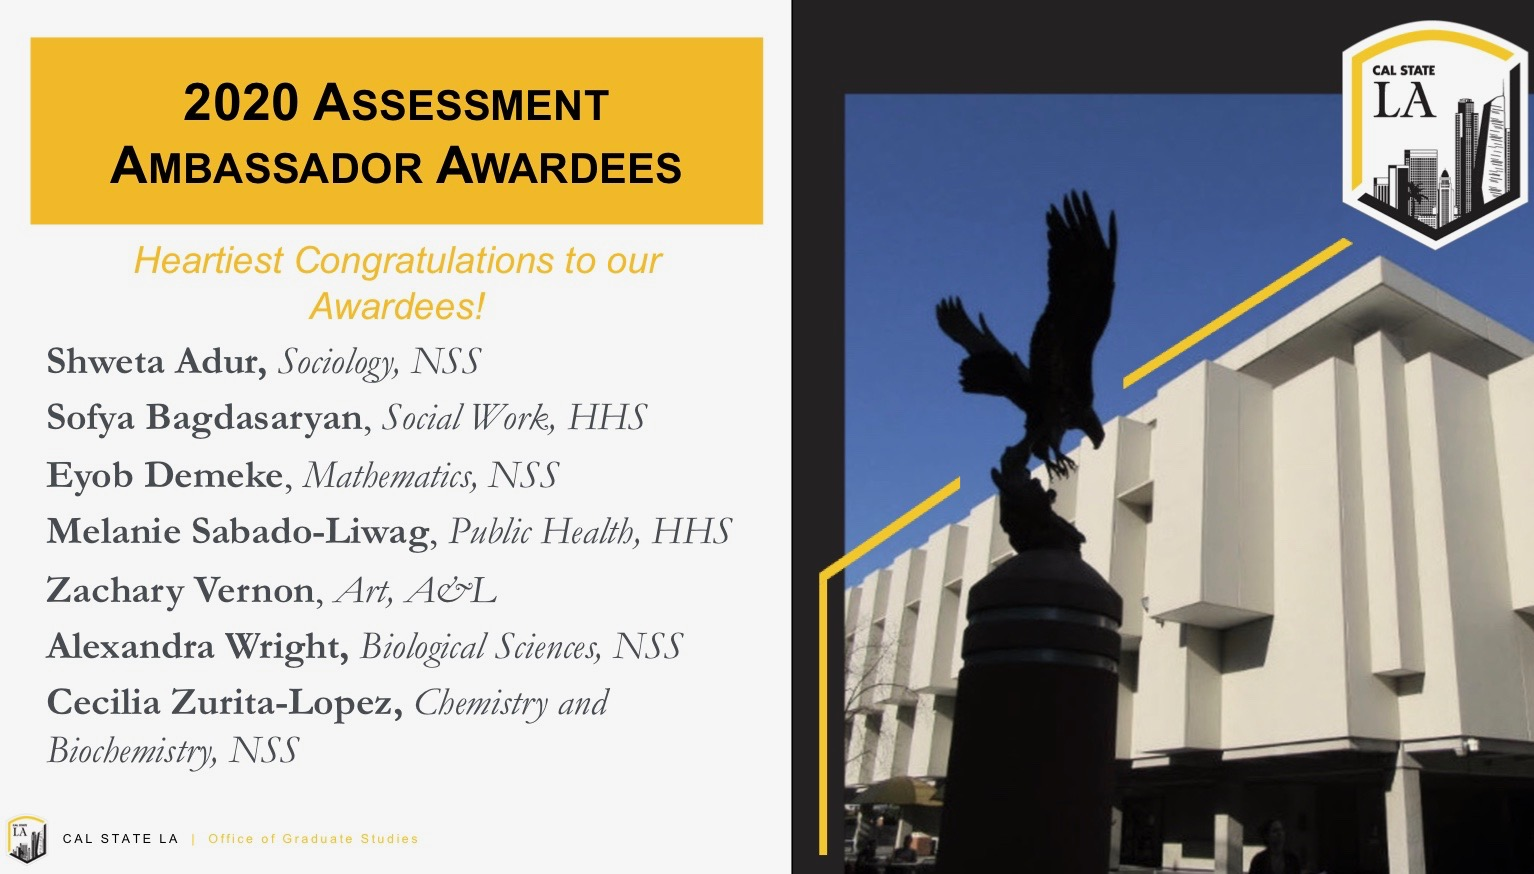 2020 Assessment Ambassador Awardees